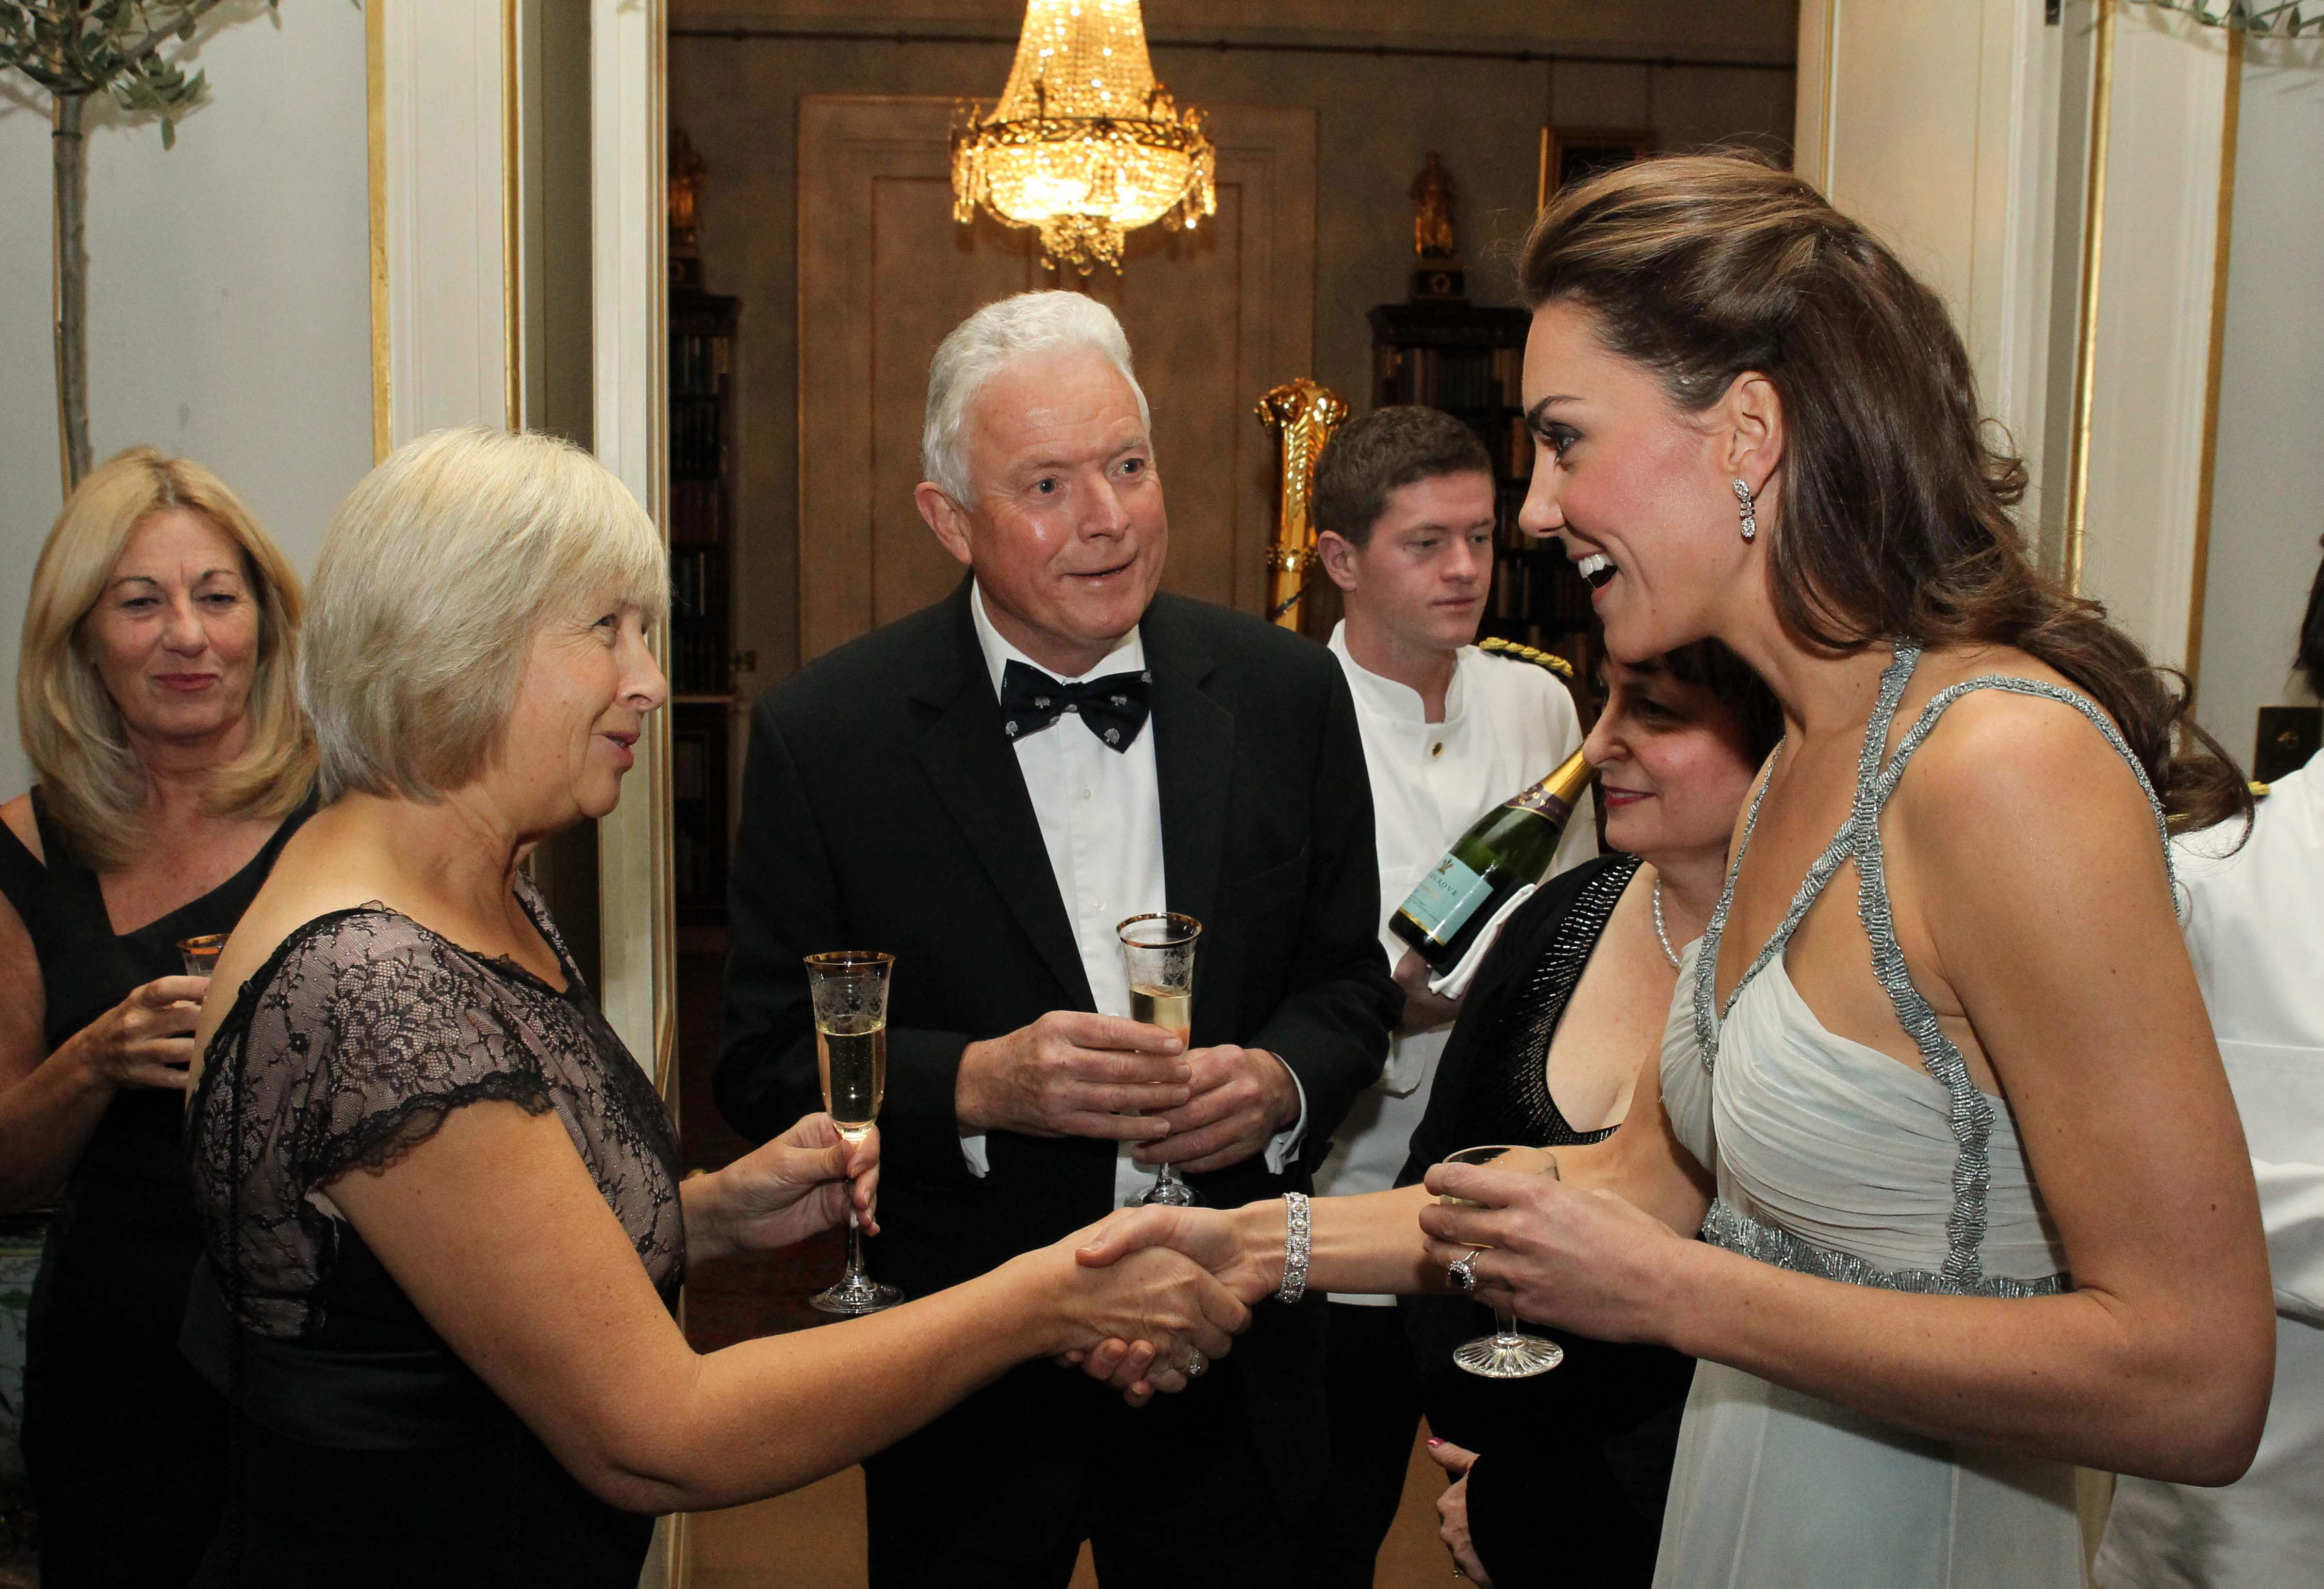 <strong>Going Solo in Silver</strong>                                   Middleton hosted her first official solo engagement on Oct. 26, 2011, after Prince Charles had to travel to Saudi Arabia to pay condolences to the royal family following the death of the Crown Prince. She chose a silver Amanda Wakeley gown to fete In Kind Direct, a charity founded by Prince Charles in 1996.